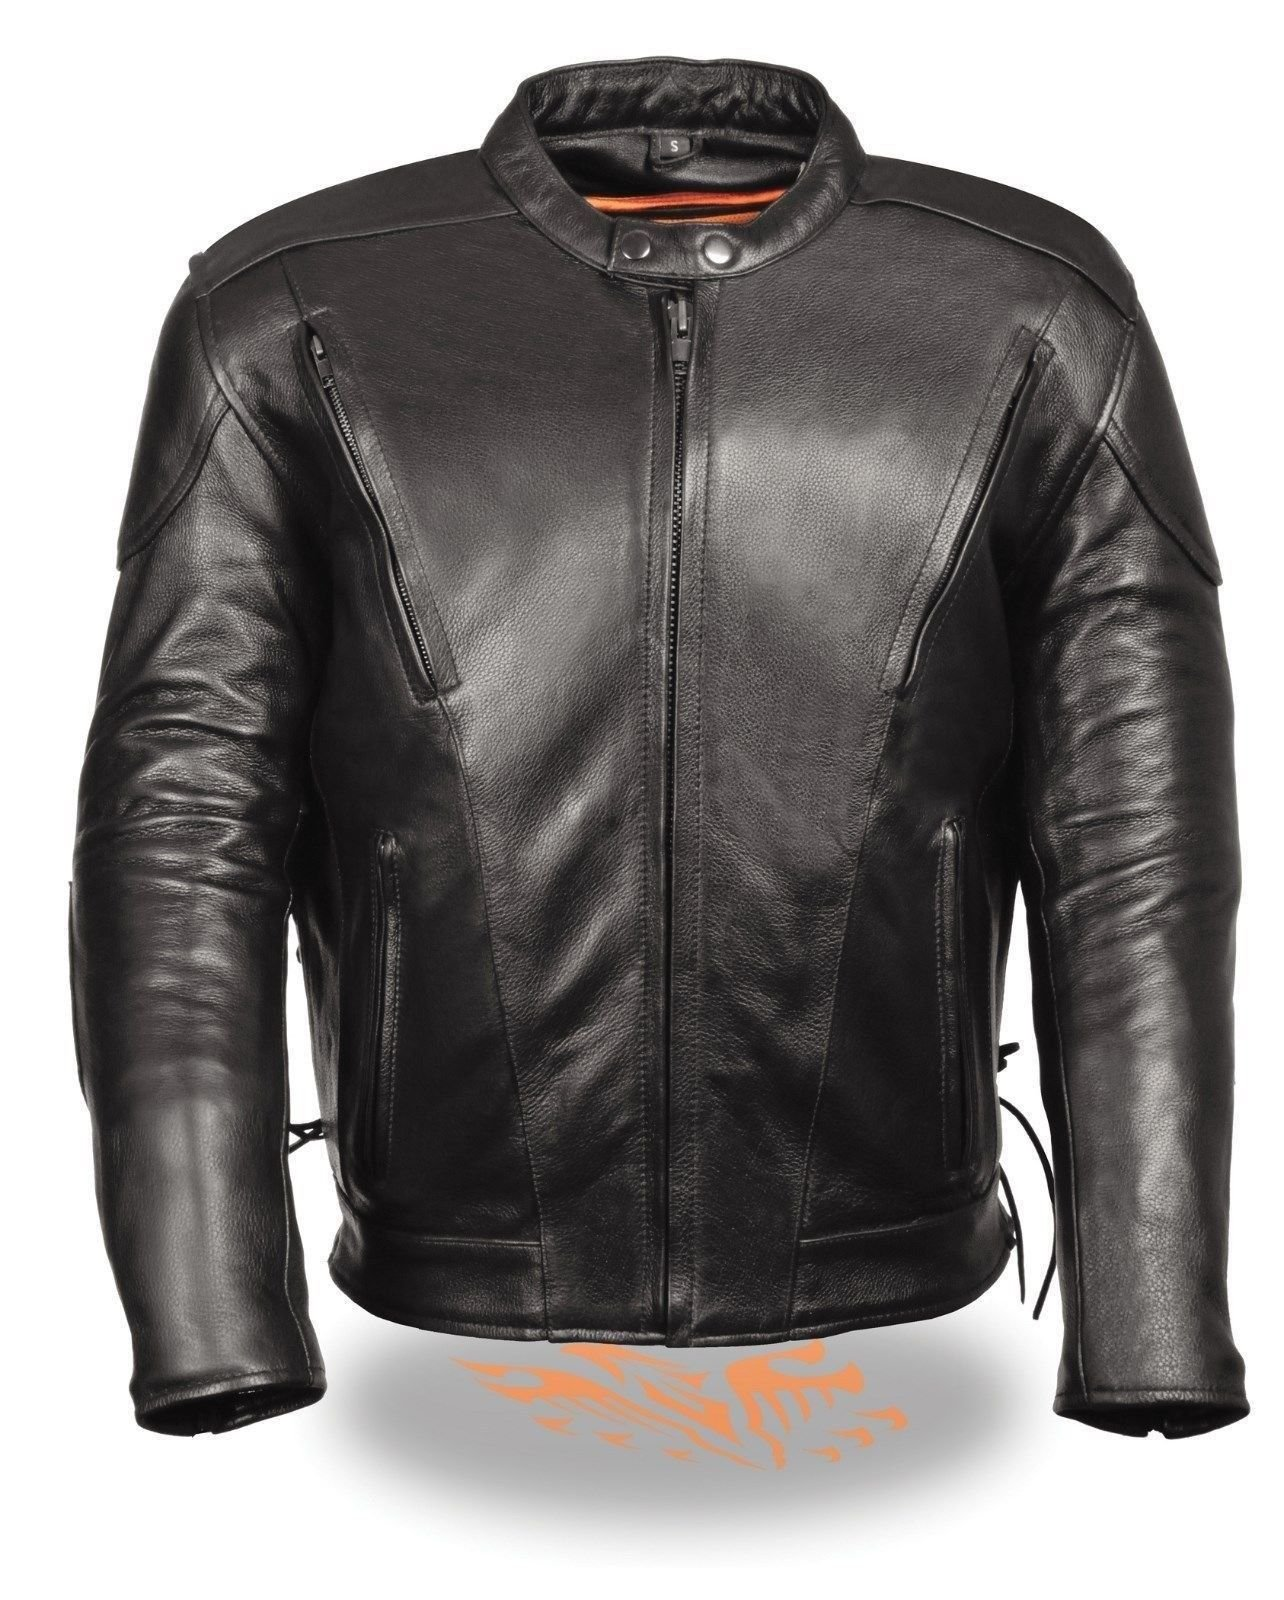 MEN'S MOTORCYCLE BLK VENTED LEATHER JACKET WITH 2 GUN POCKETS UPTO SIZE 12XL (5XL Regular)